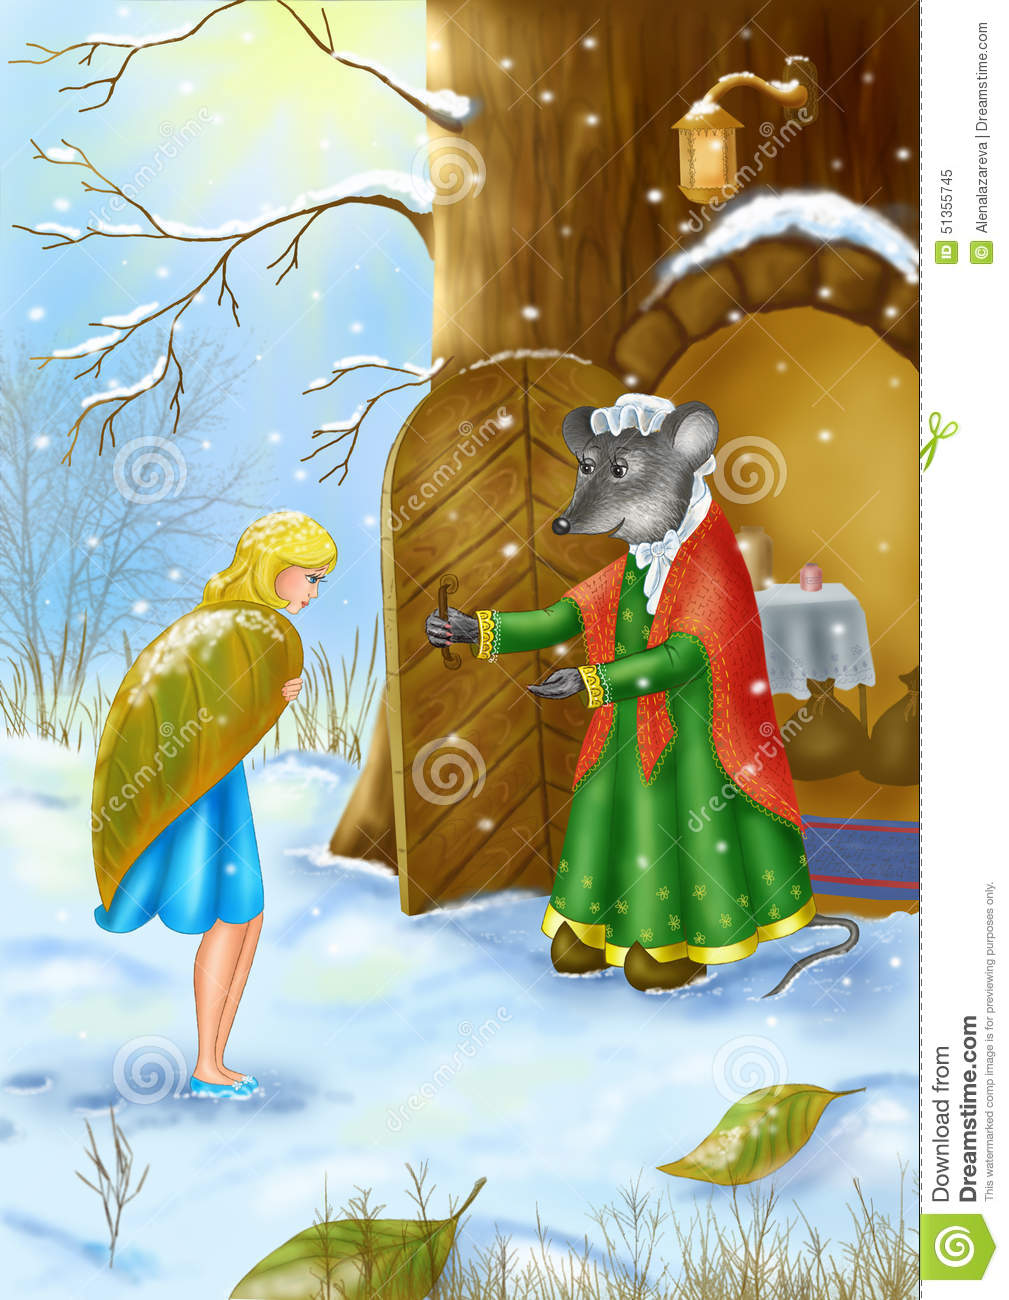 the mouse rescues thumbelina in the winter from cold winter